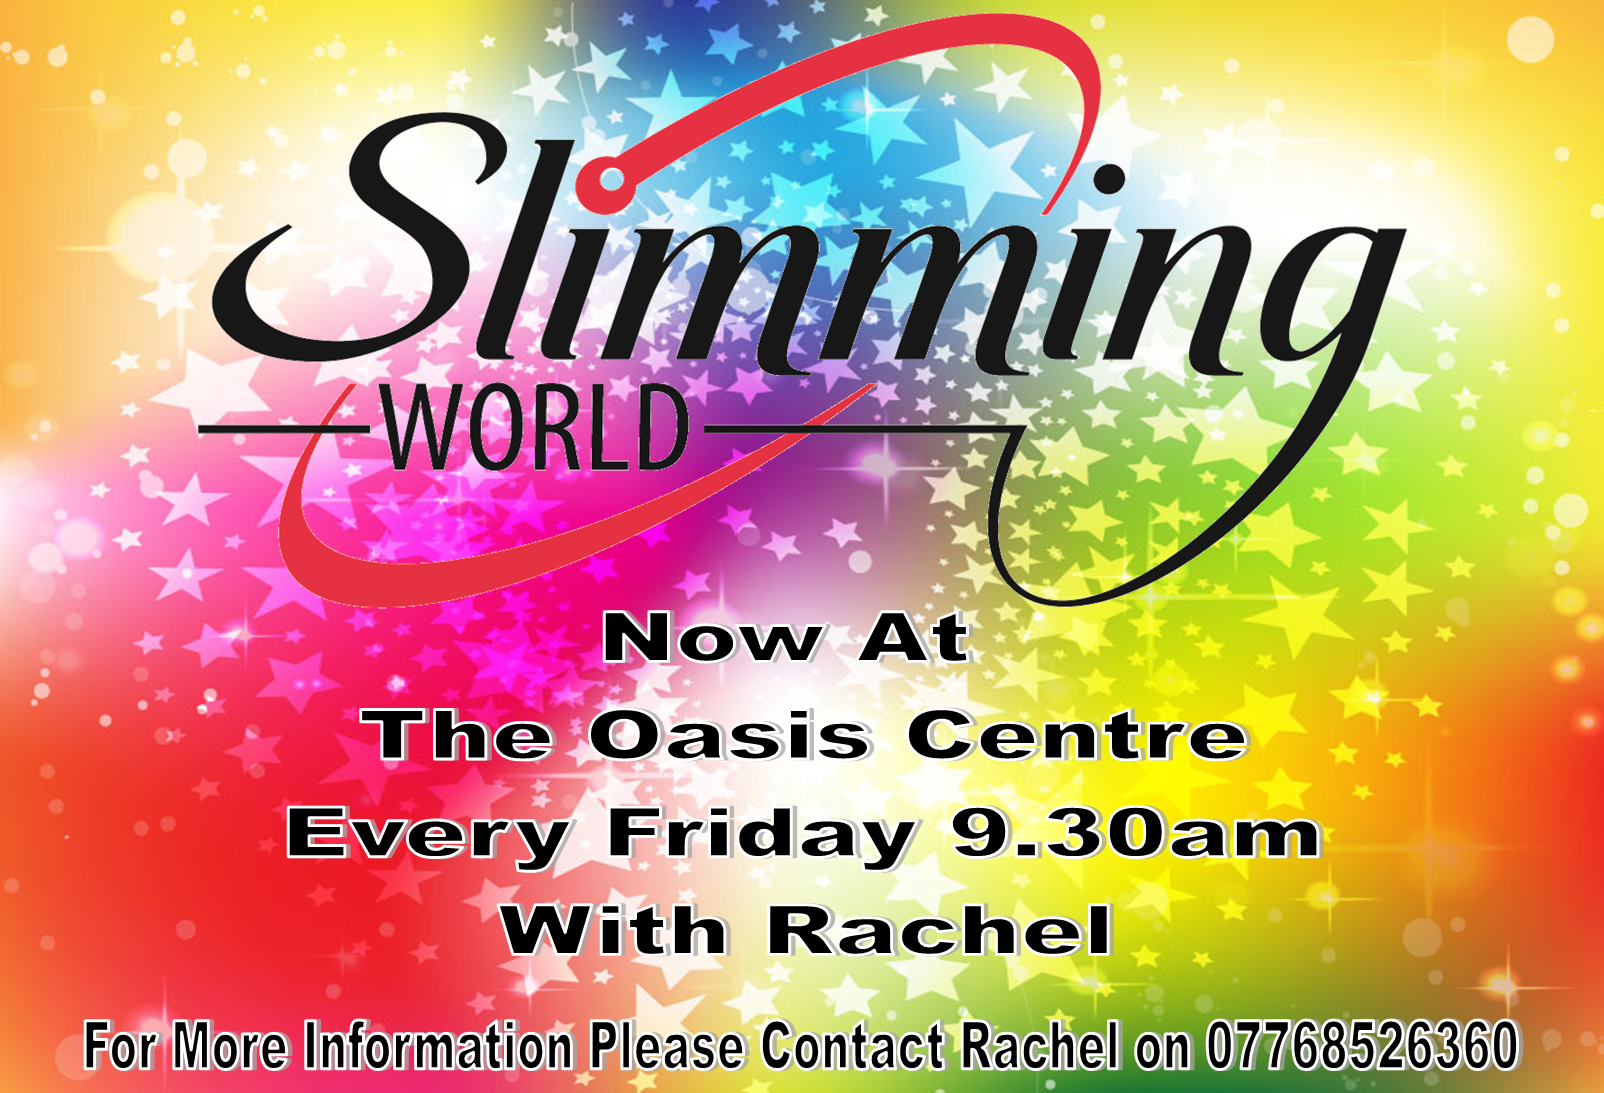 Oasis community centre whats on Slimming world website please